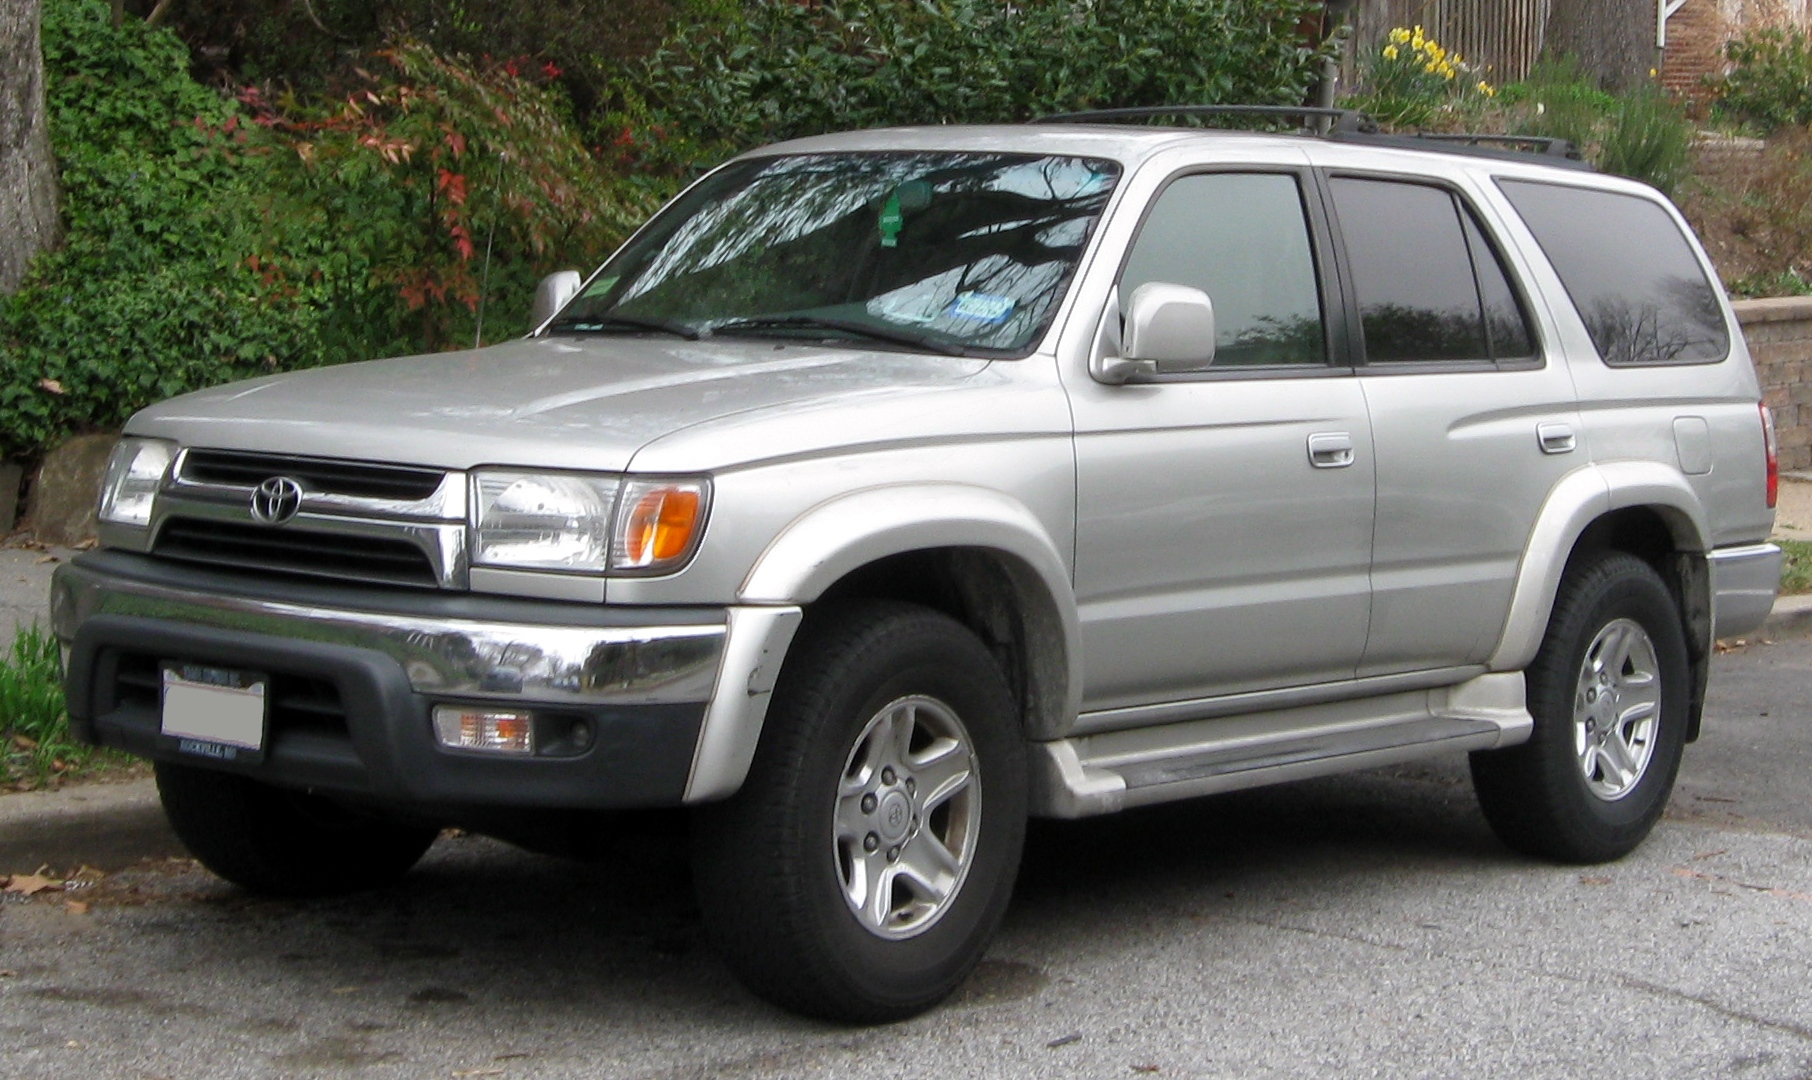 1992 Toyota 4runner Sr5 4wd Vin Number Search